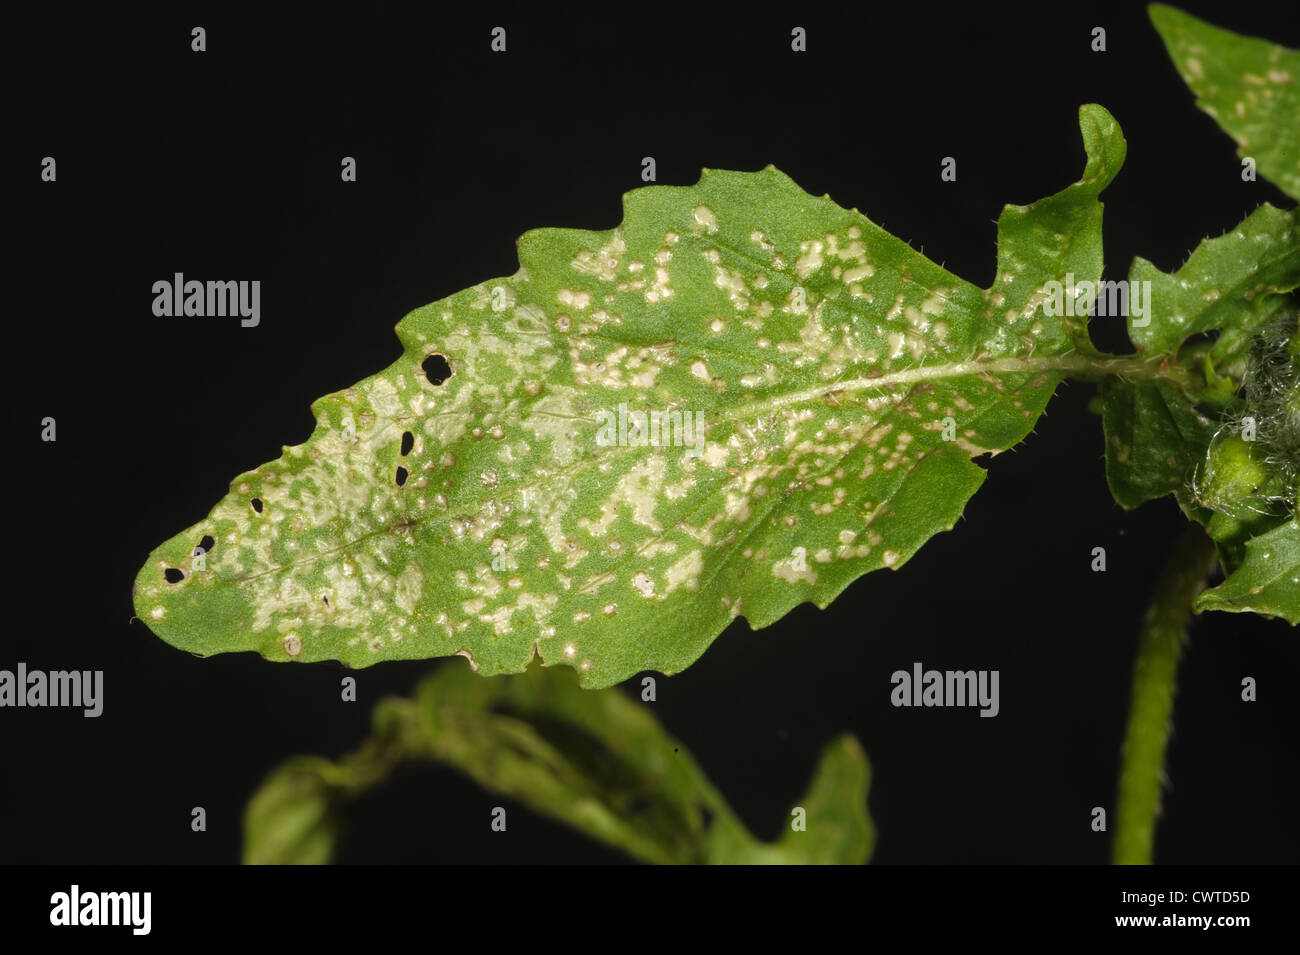 Thrips damage to the leaves of flowering rocket - Stock Image